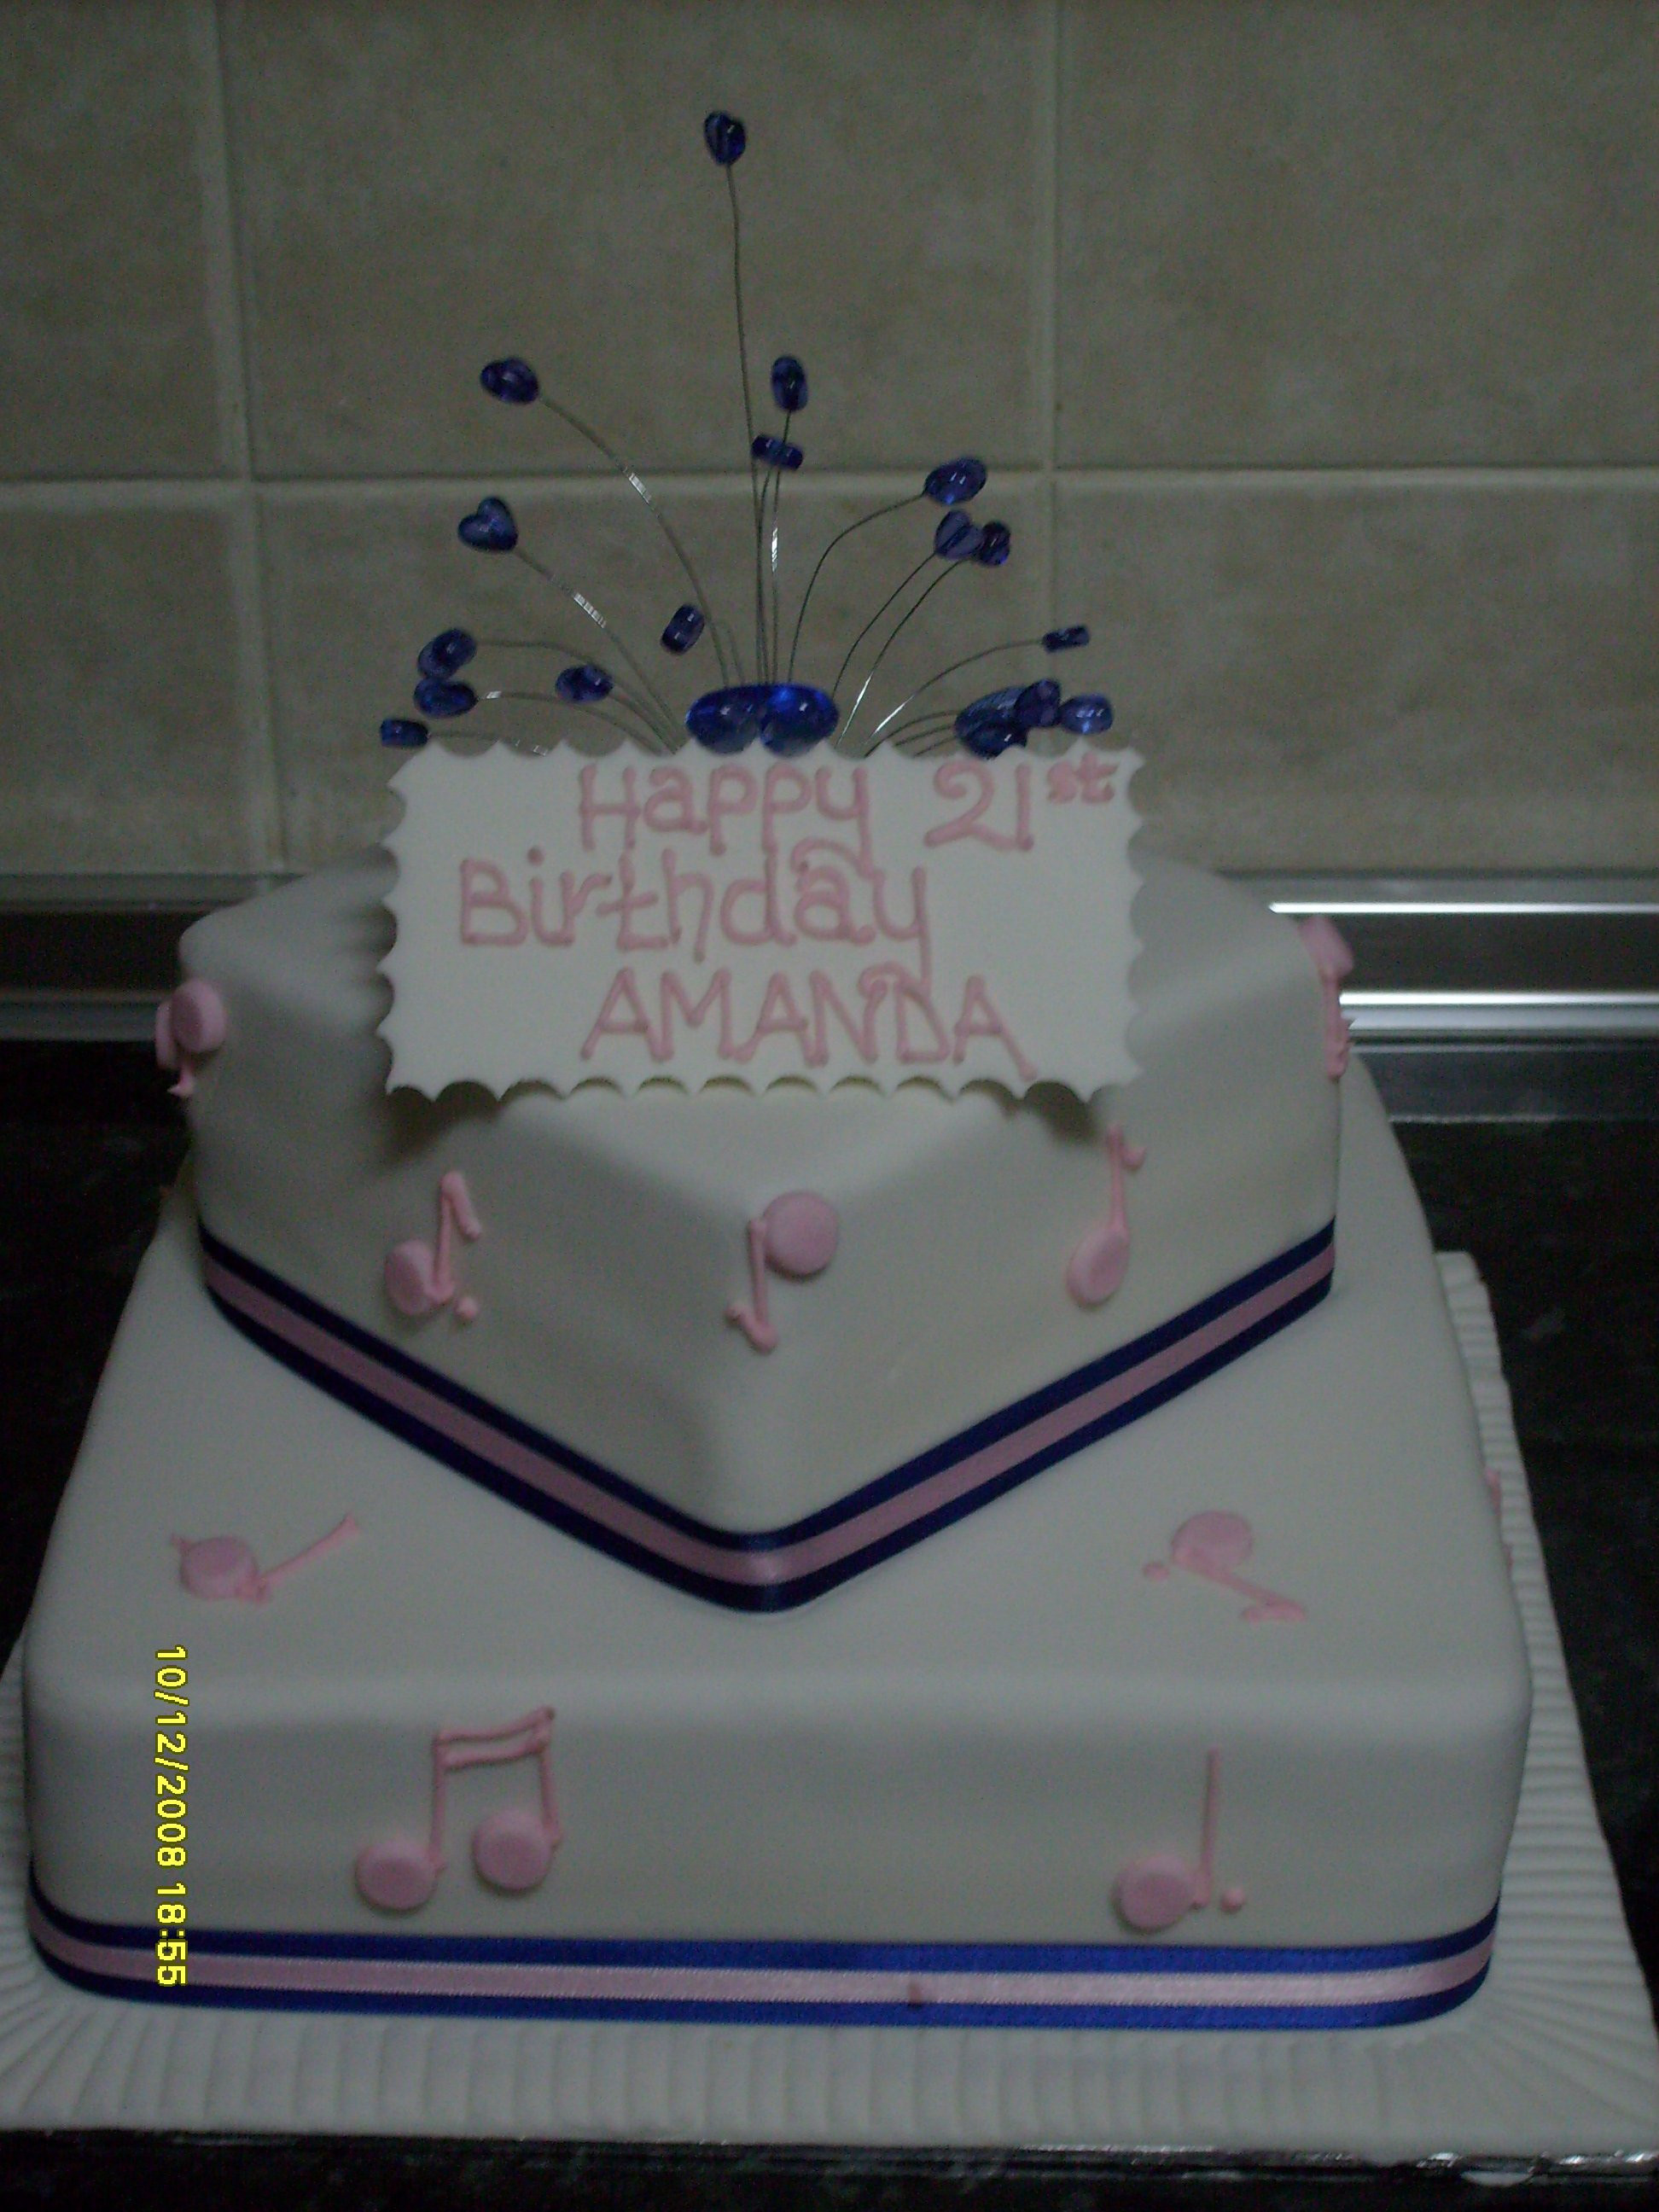 Best ideas about Birthday Cake Photo . Save or Pin Birthday Cakes cakecreation Now.